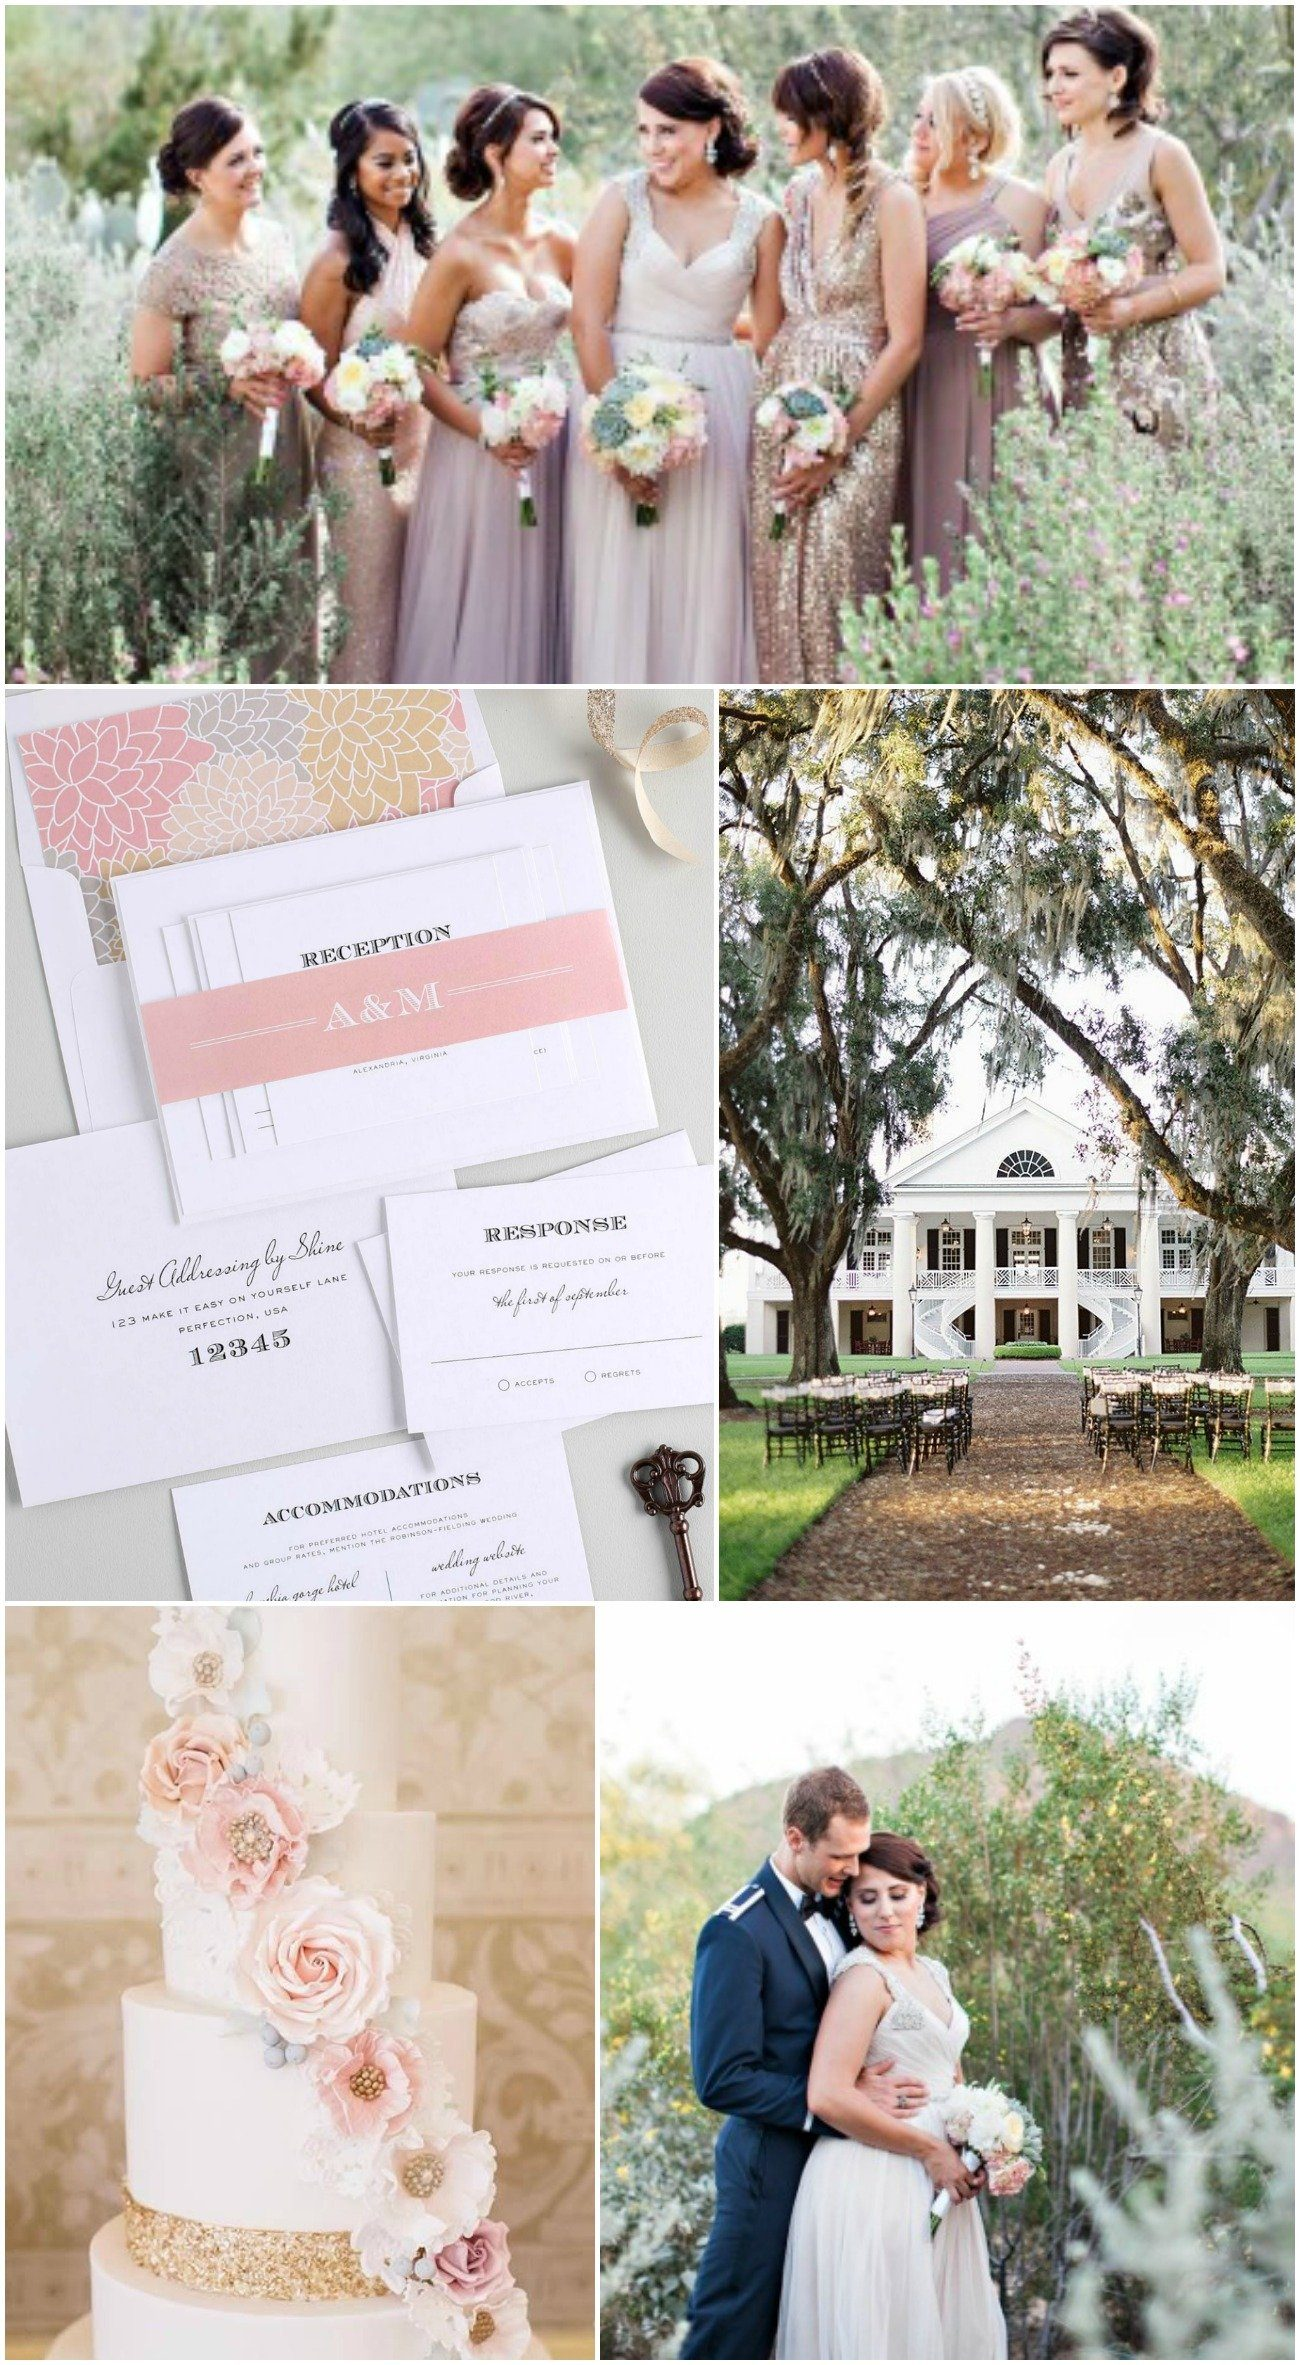 Blush + champagne southern wedding inspiration